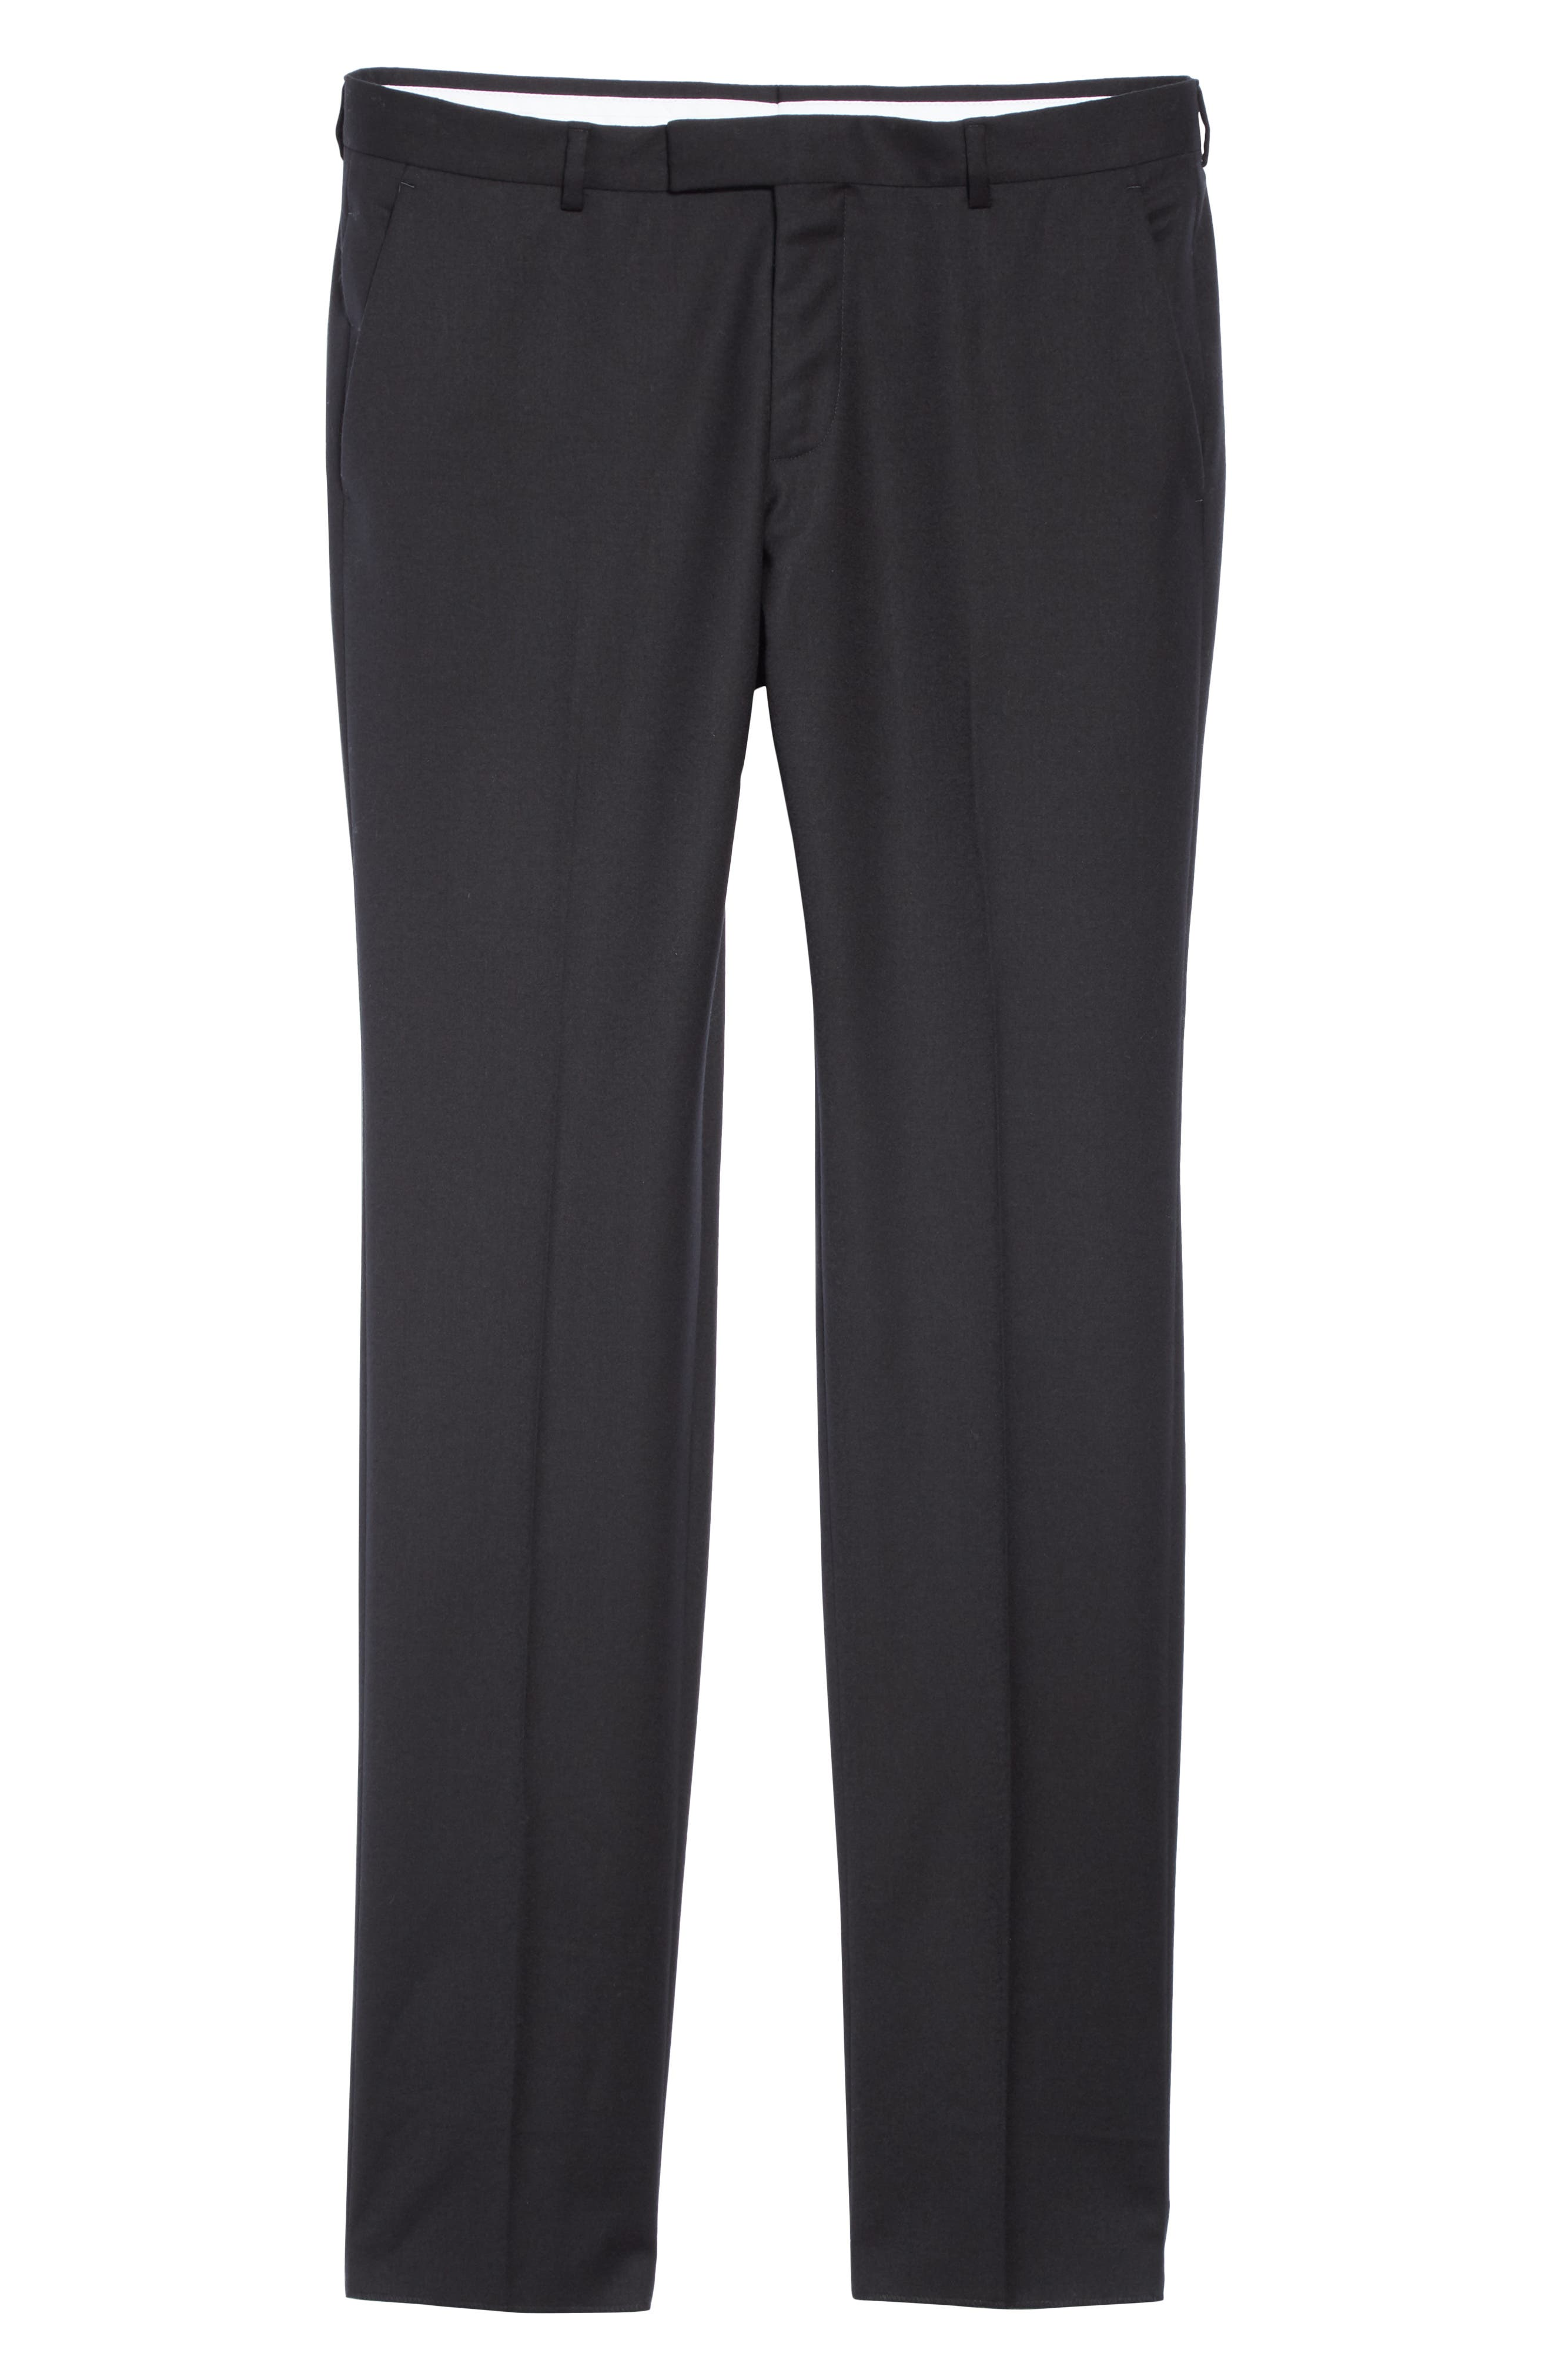 Flat Front Solid Stretch Wool Trousers,                             Alternate thumbnail 6, color,                             BLACK